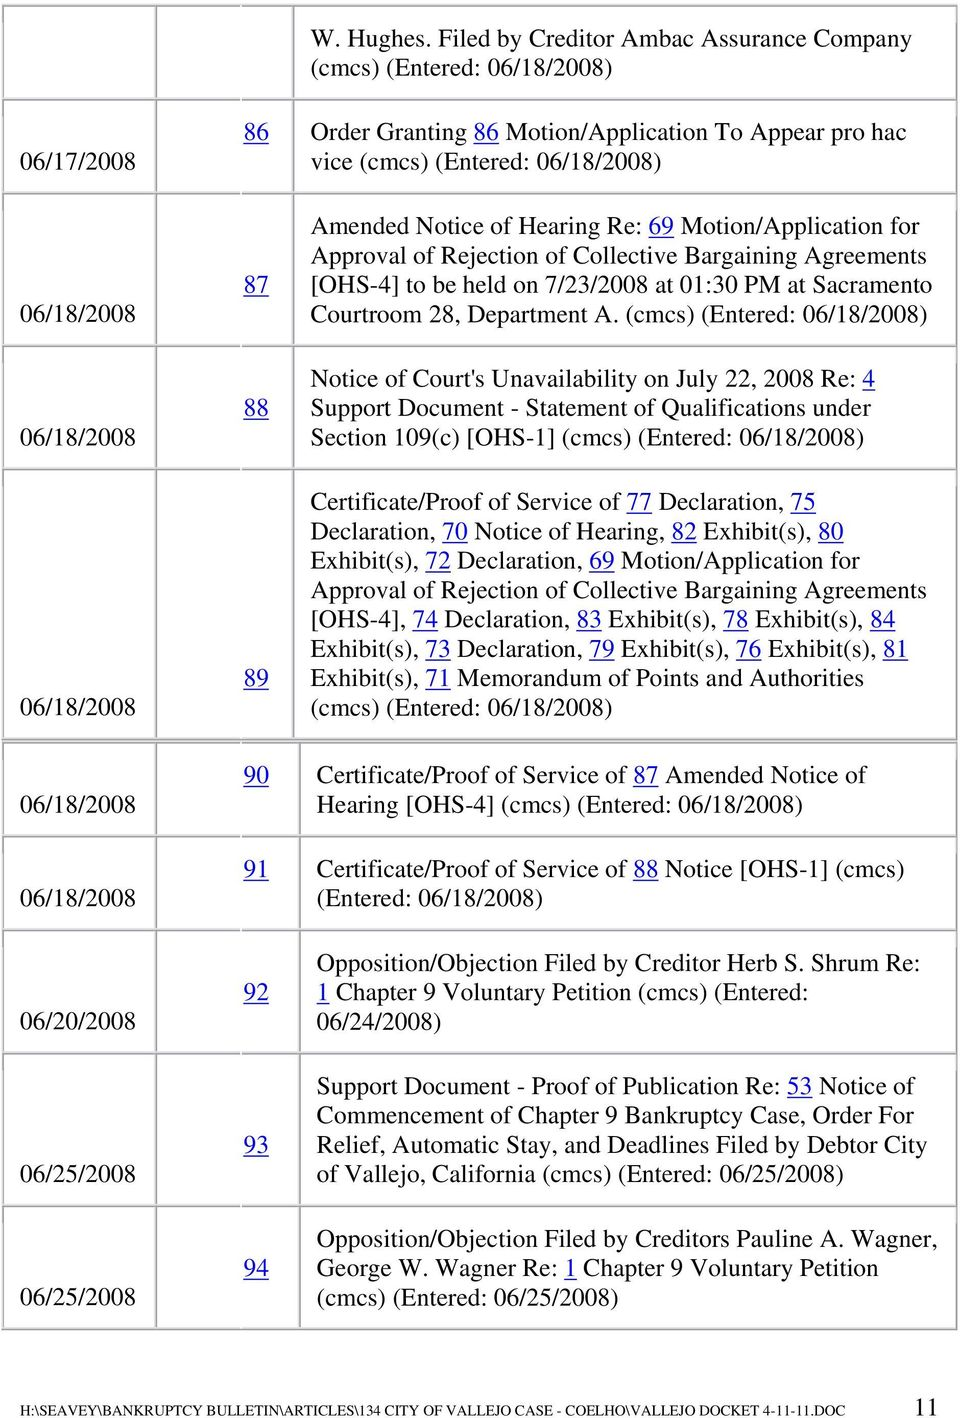 06/18/2008 87 88 89 Amended Notice of Hearing Re: 69 Motion/Application for Approval of Rejection of Collective Bargaining Agreements [OHS-4] to be held on 7/23/2008 at 01:30 PM at Sacramento